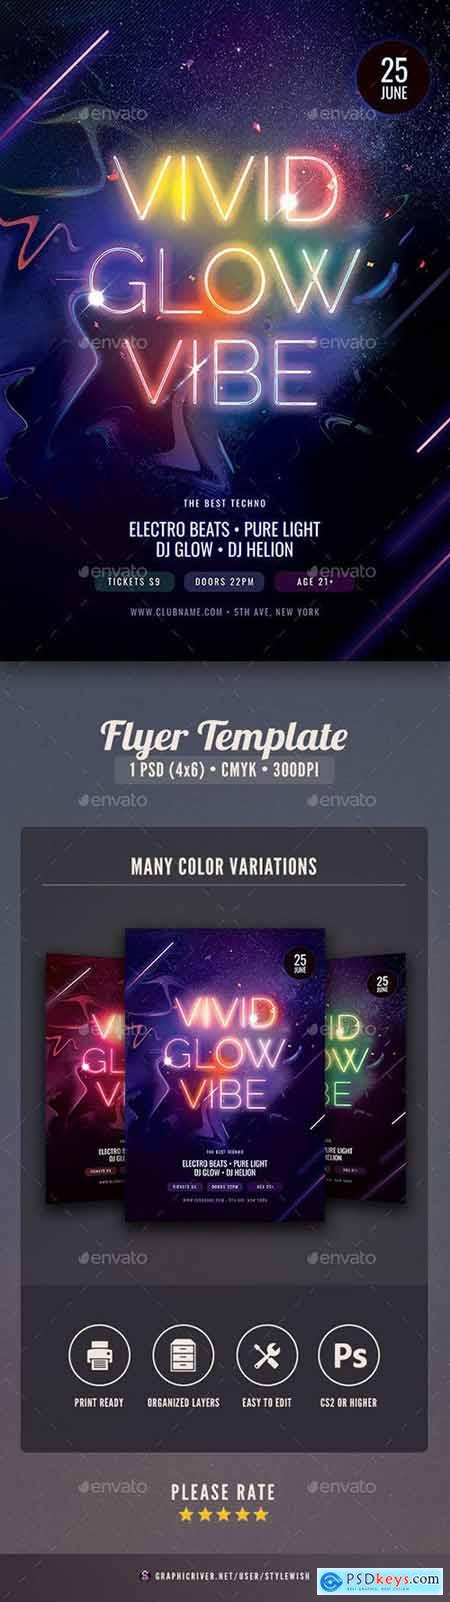 Graphicriver Vivid Glow Vibe Flyer